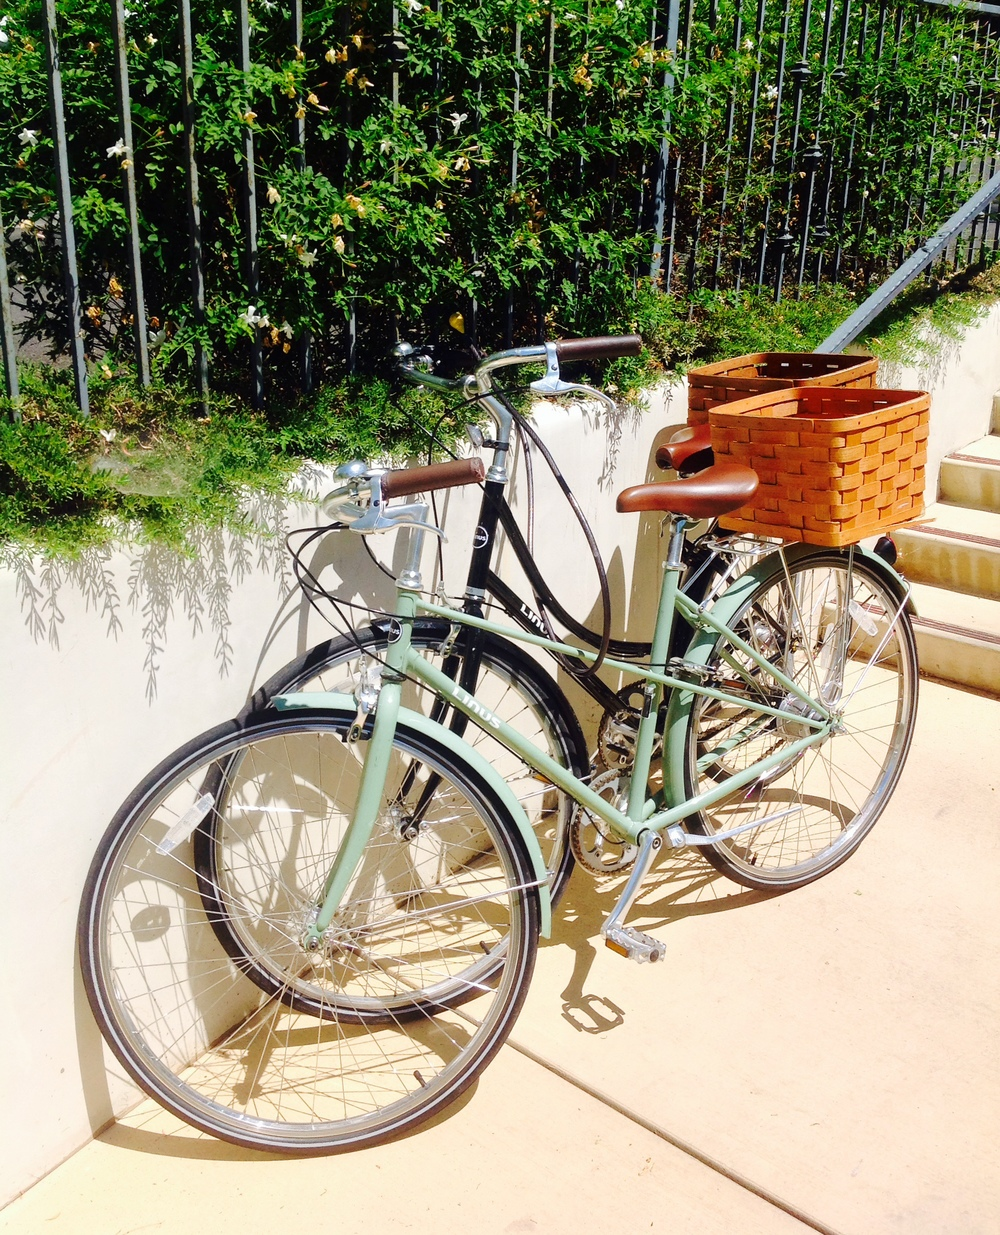 This is a picture of 2 bikes WE DID NOT RIDE. I took a photo- then contemplated riding them- but lay by the pool instead.